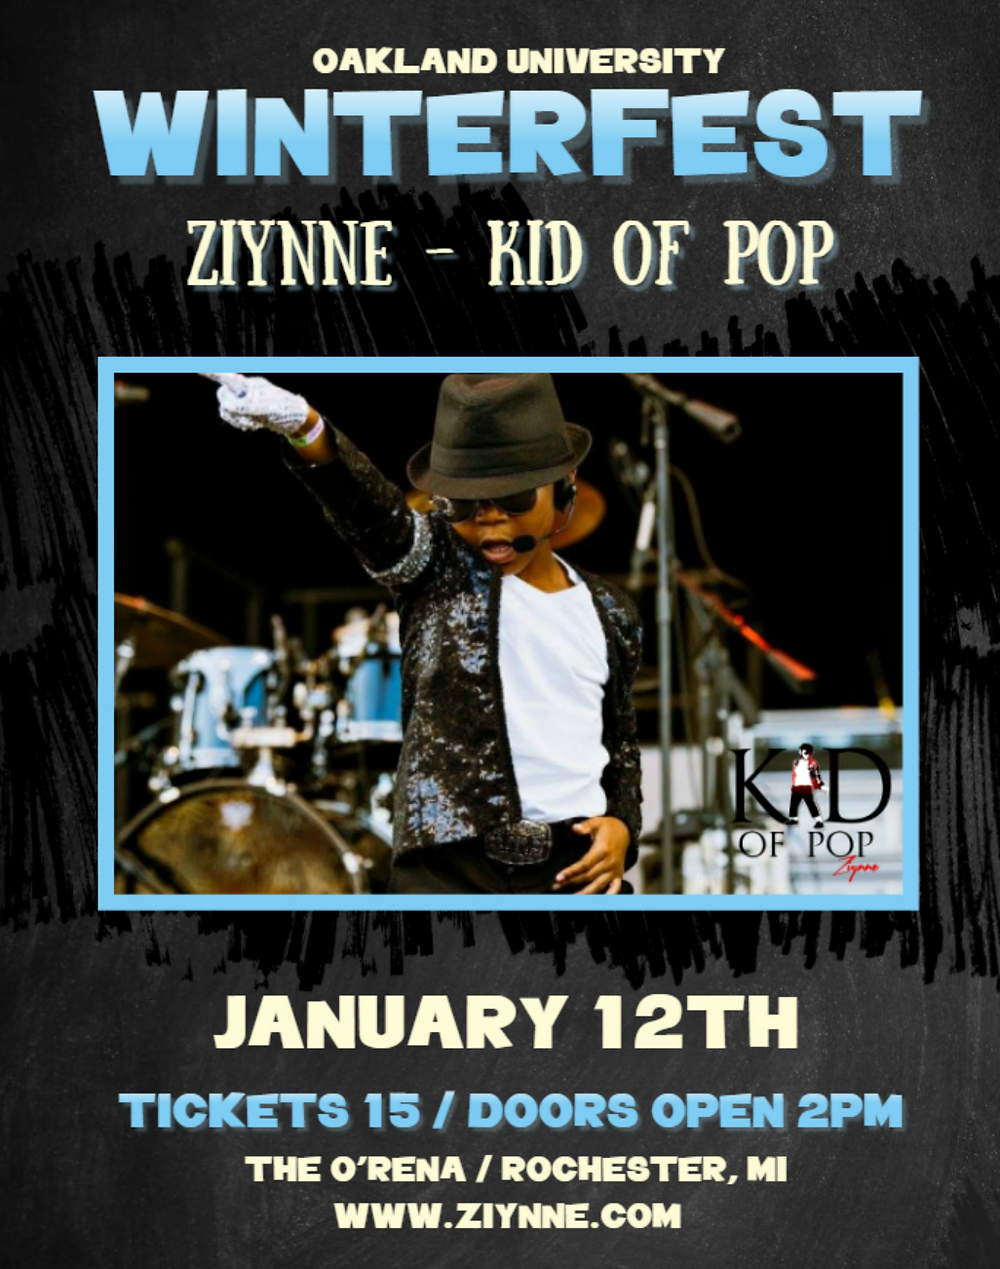 Ziynne - Kid of Pop will perform at Winterfest